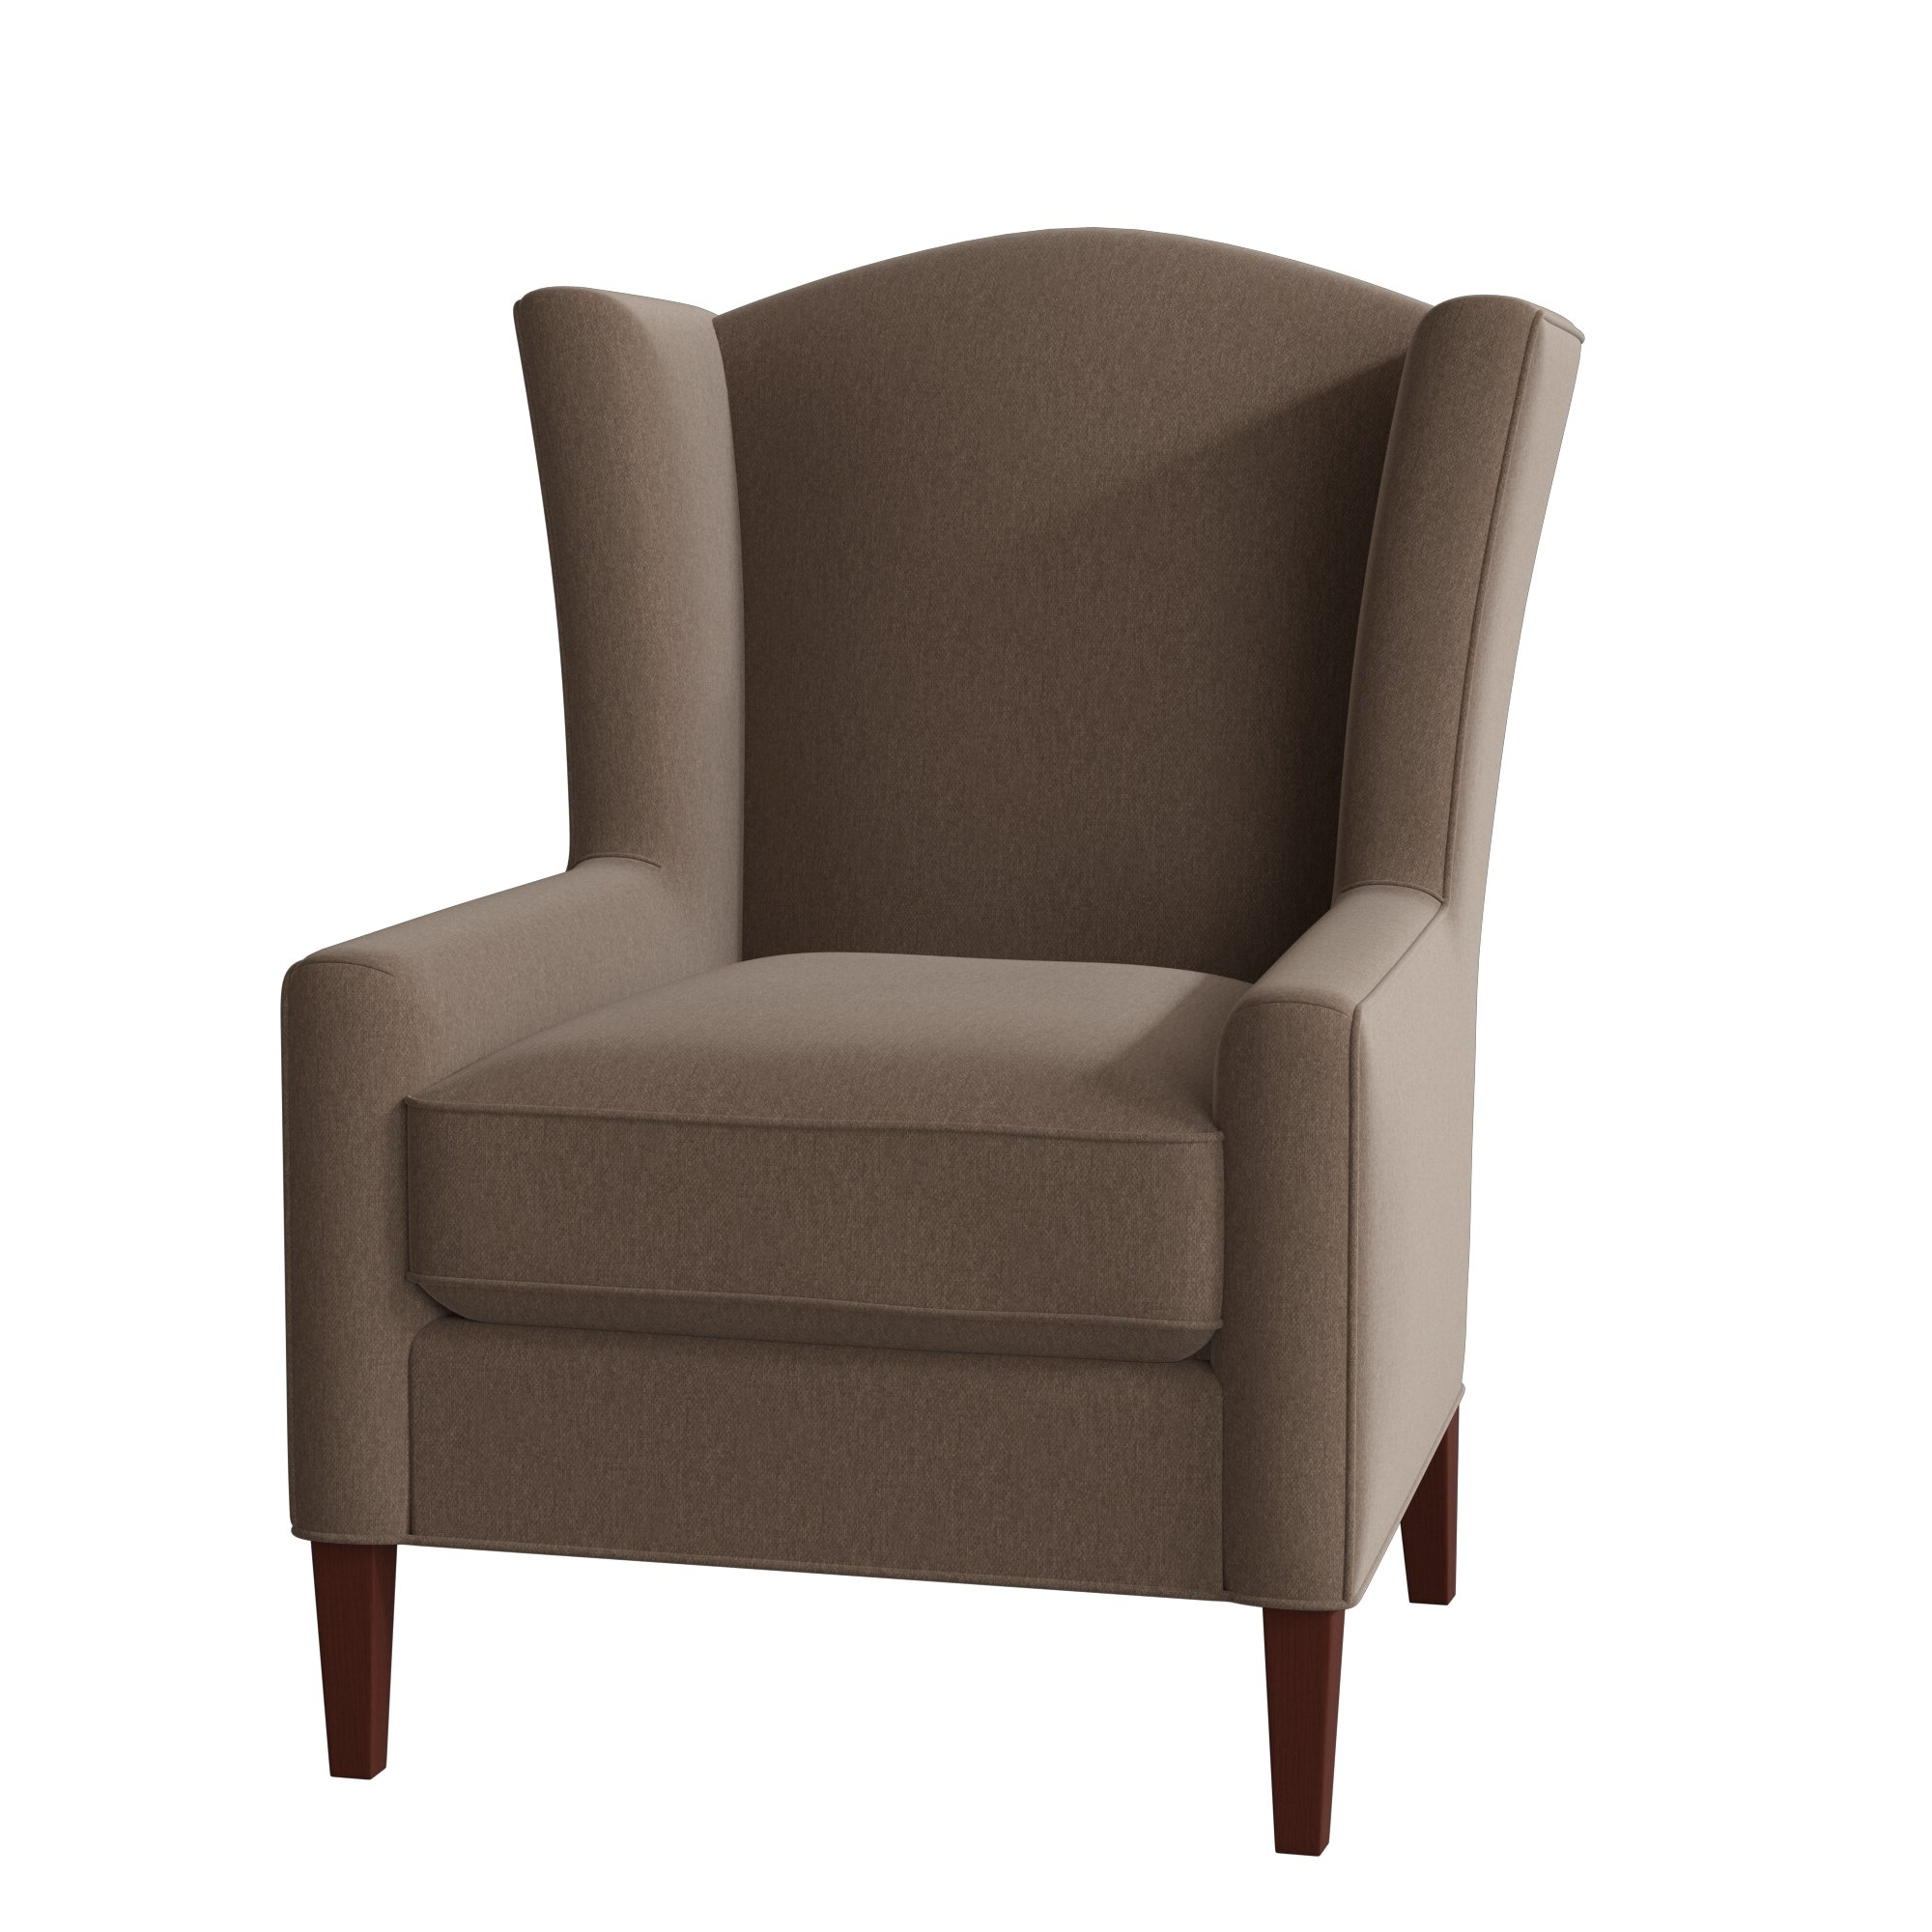 Sweetwater Wingback Chairs Within Best And Newest Imperial Wingback Chair (View 5 of 20)